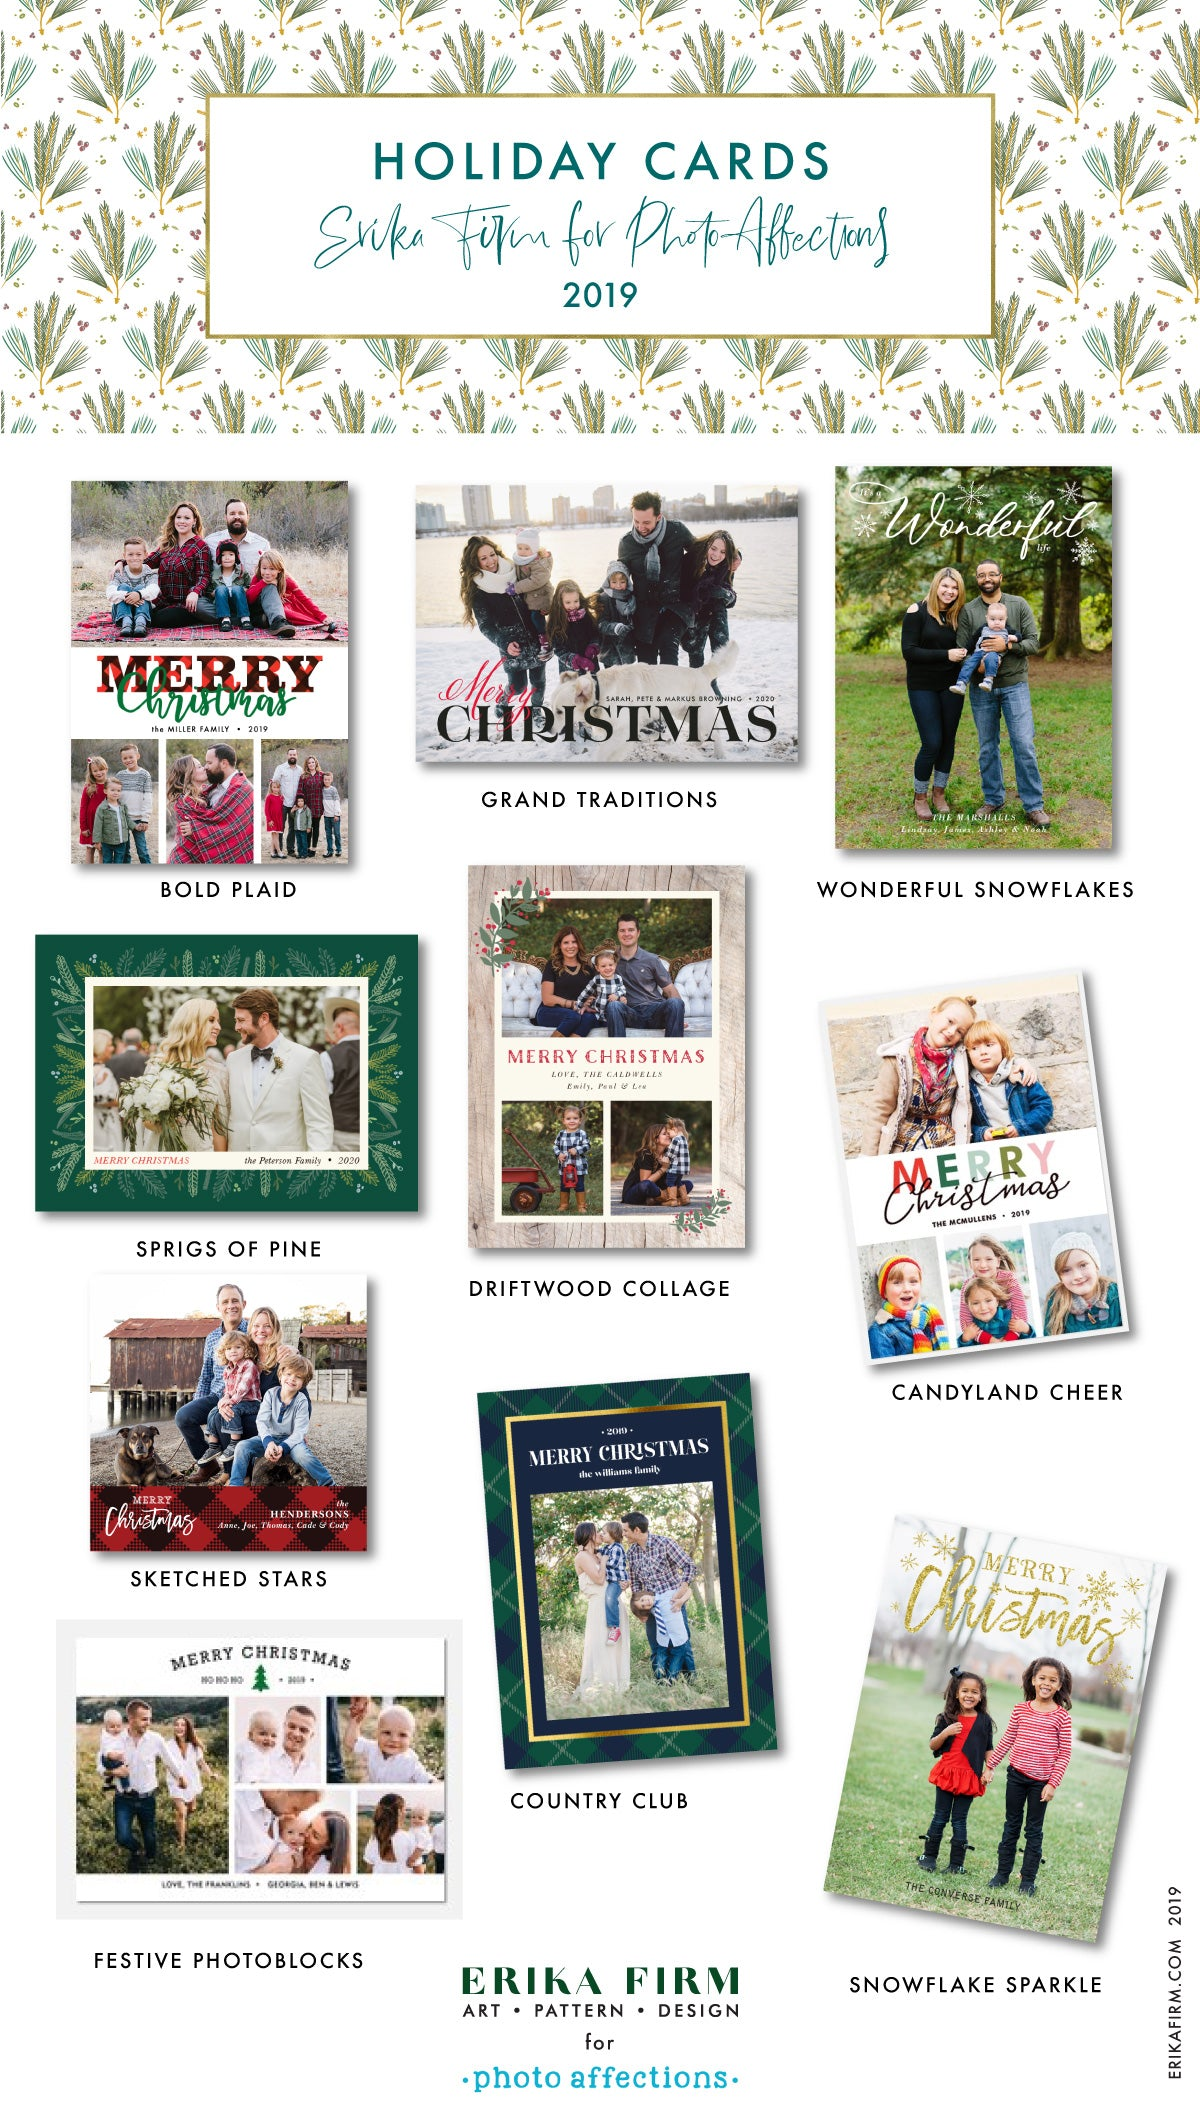 Holiday Card Collection 2019 by Erika Firm for Photo Affections